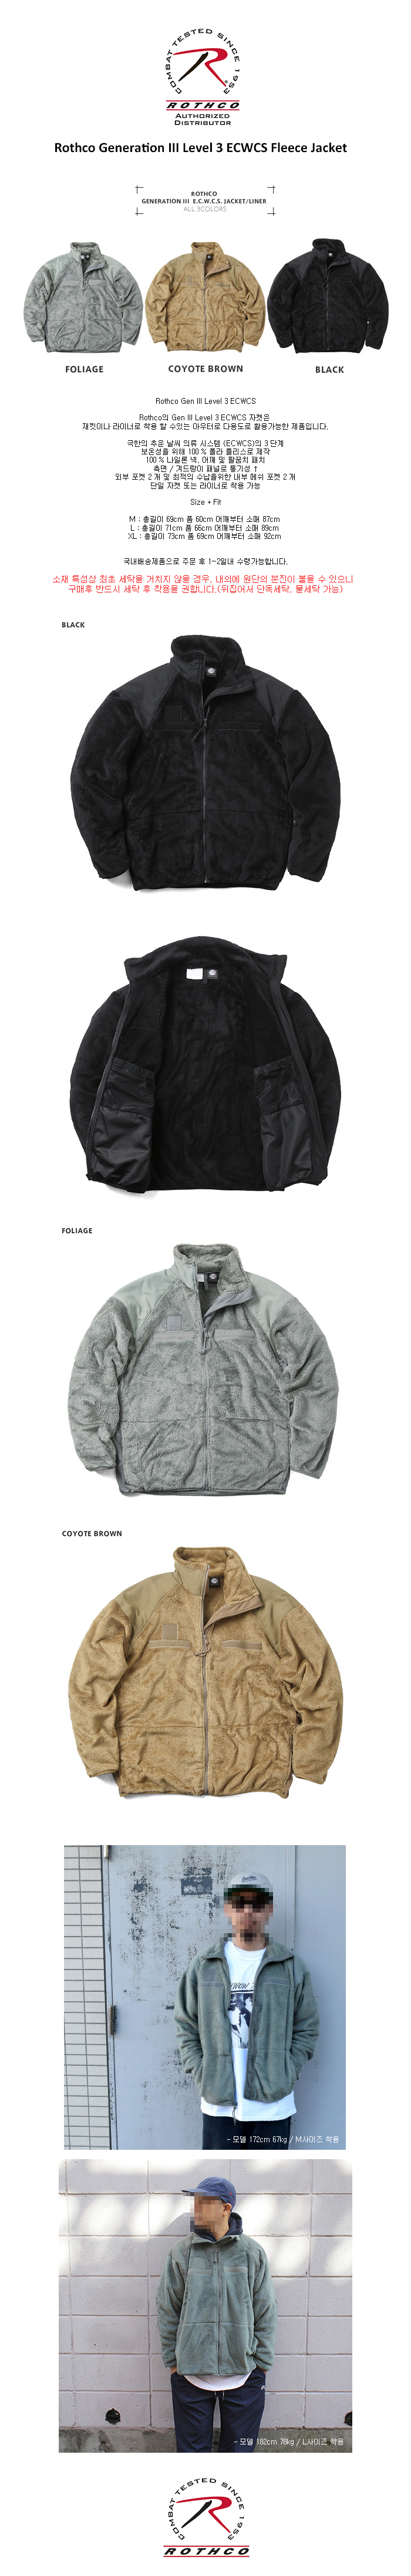 GENERATION LEVEL 3 ECWCS FLEECE JACKET (FOLIAGE GREEN)